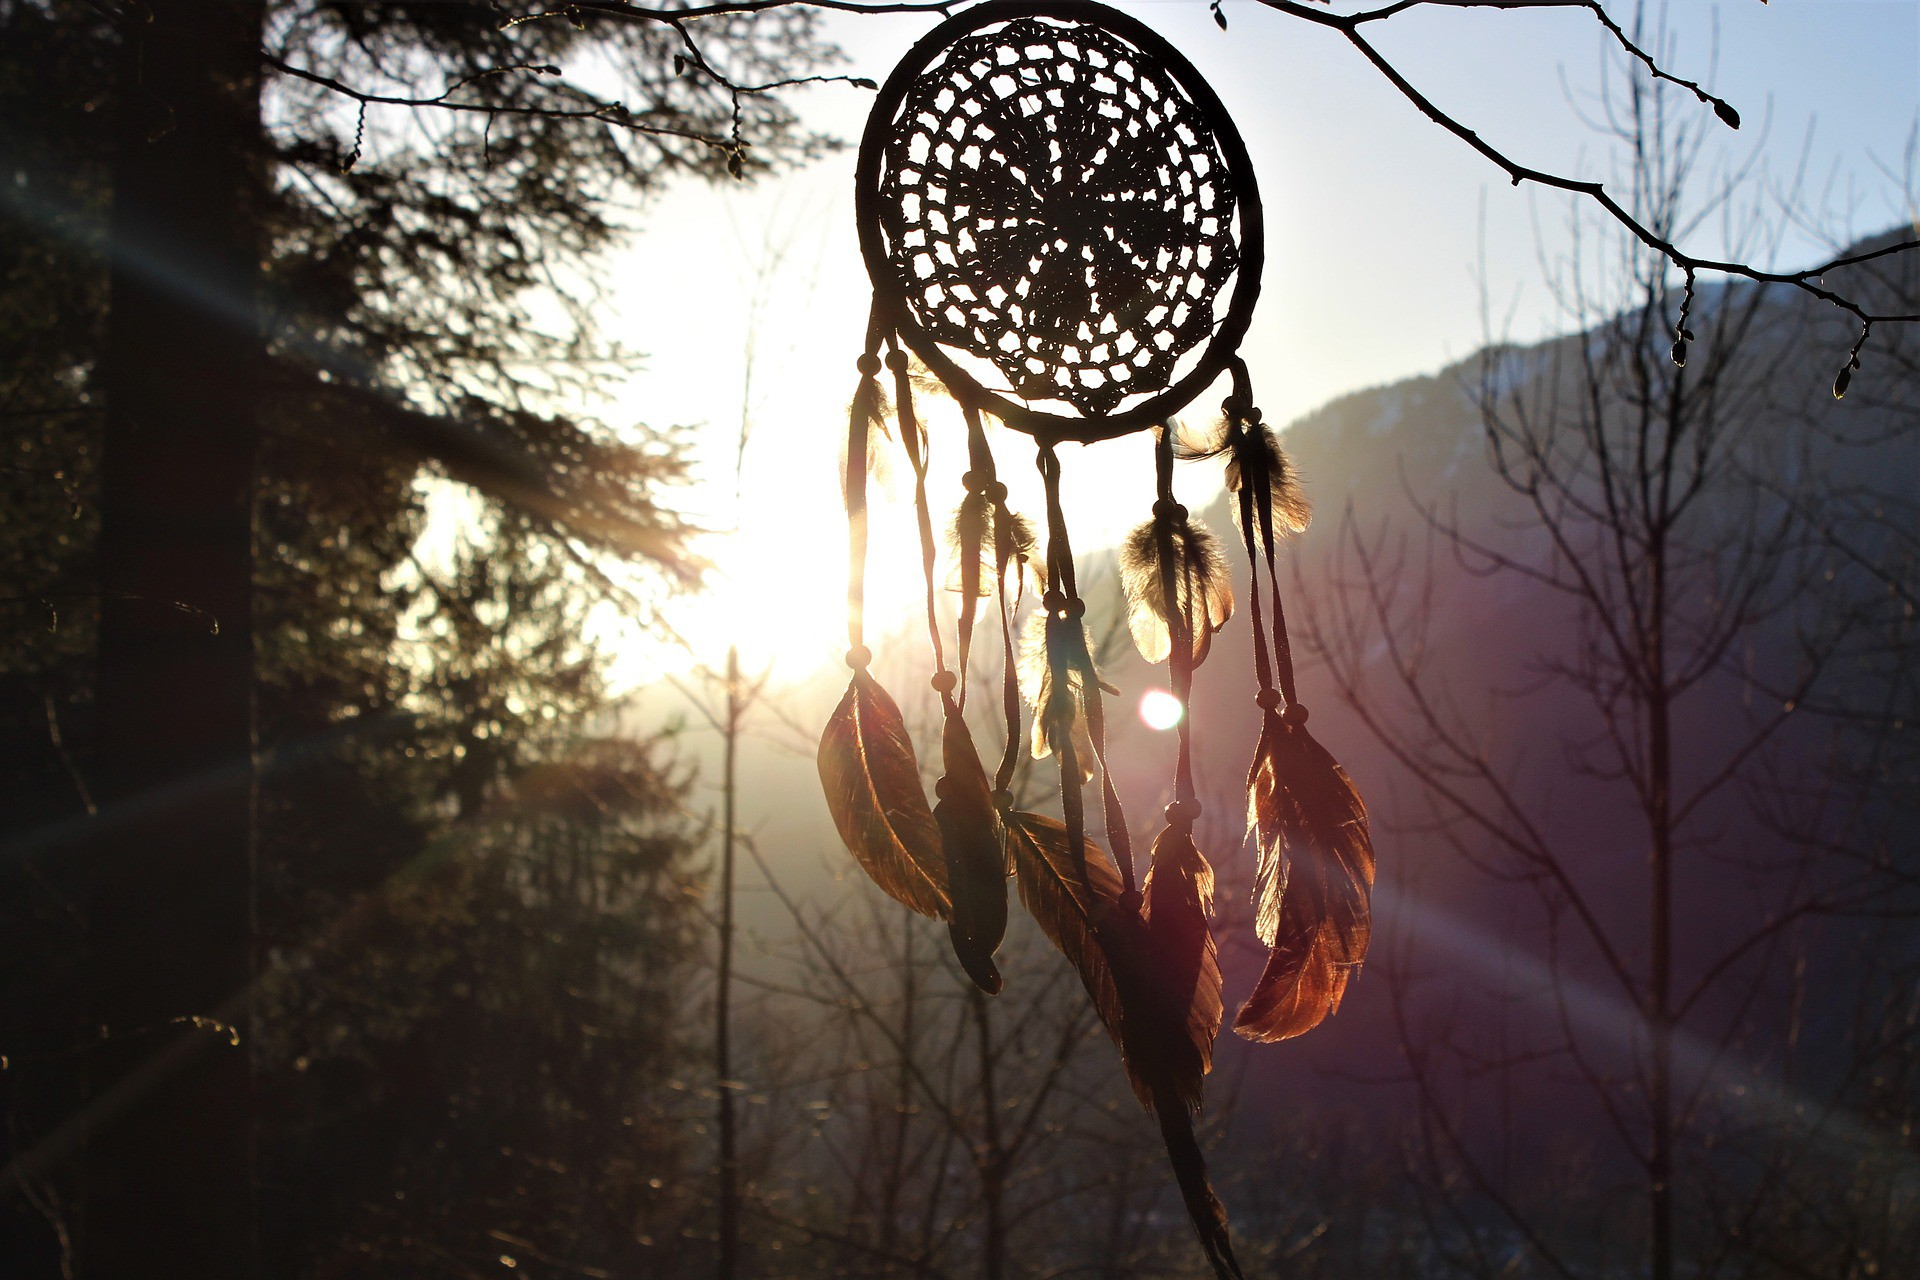 dream-catcher-3299832_1920